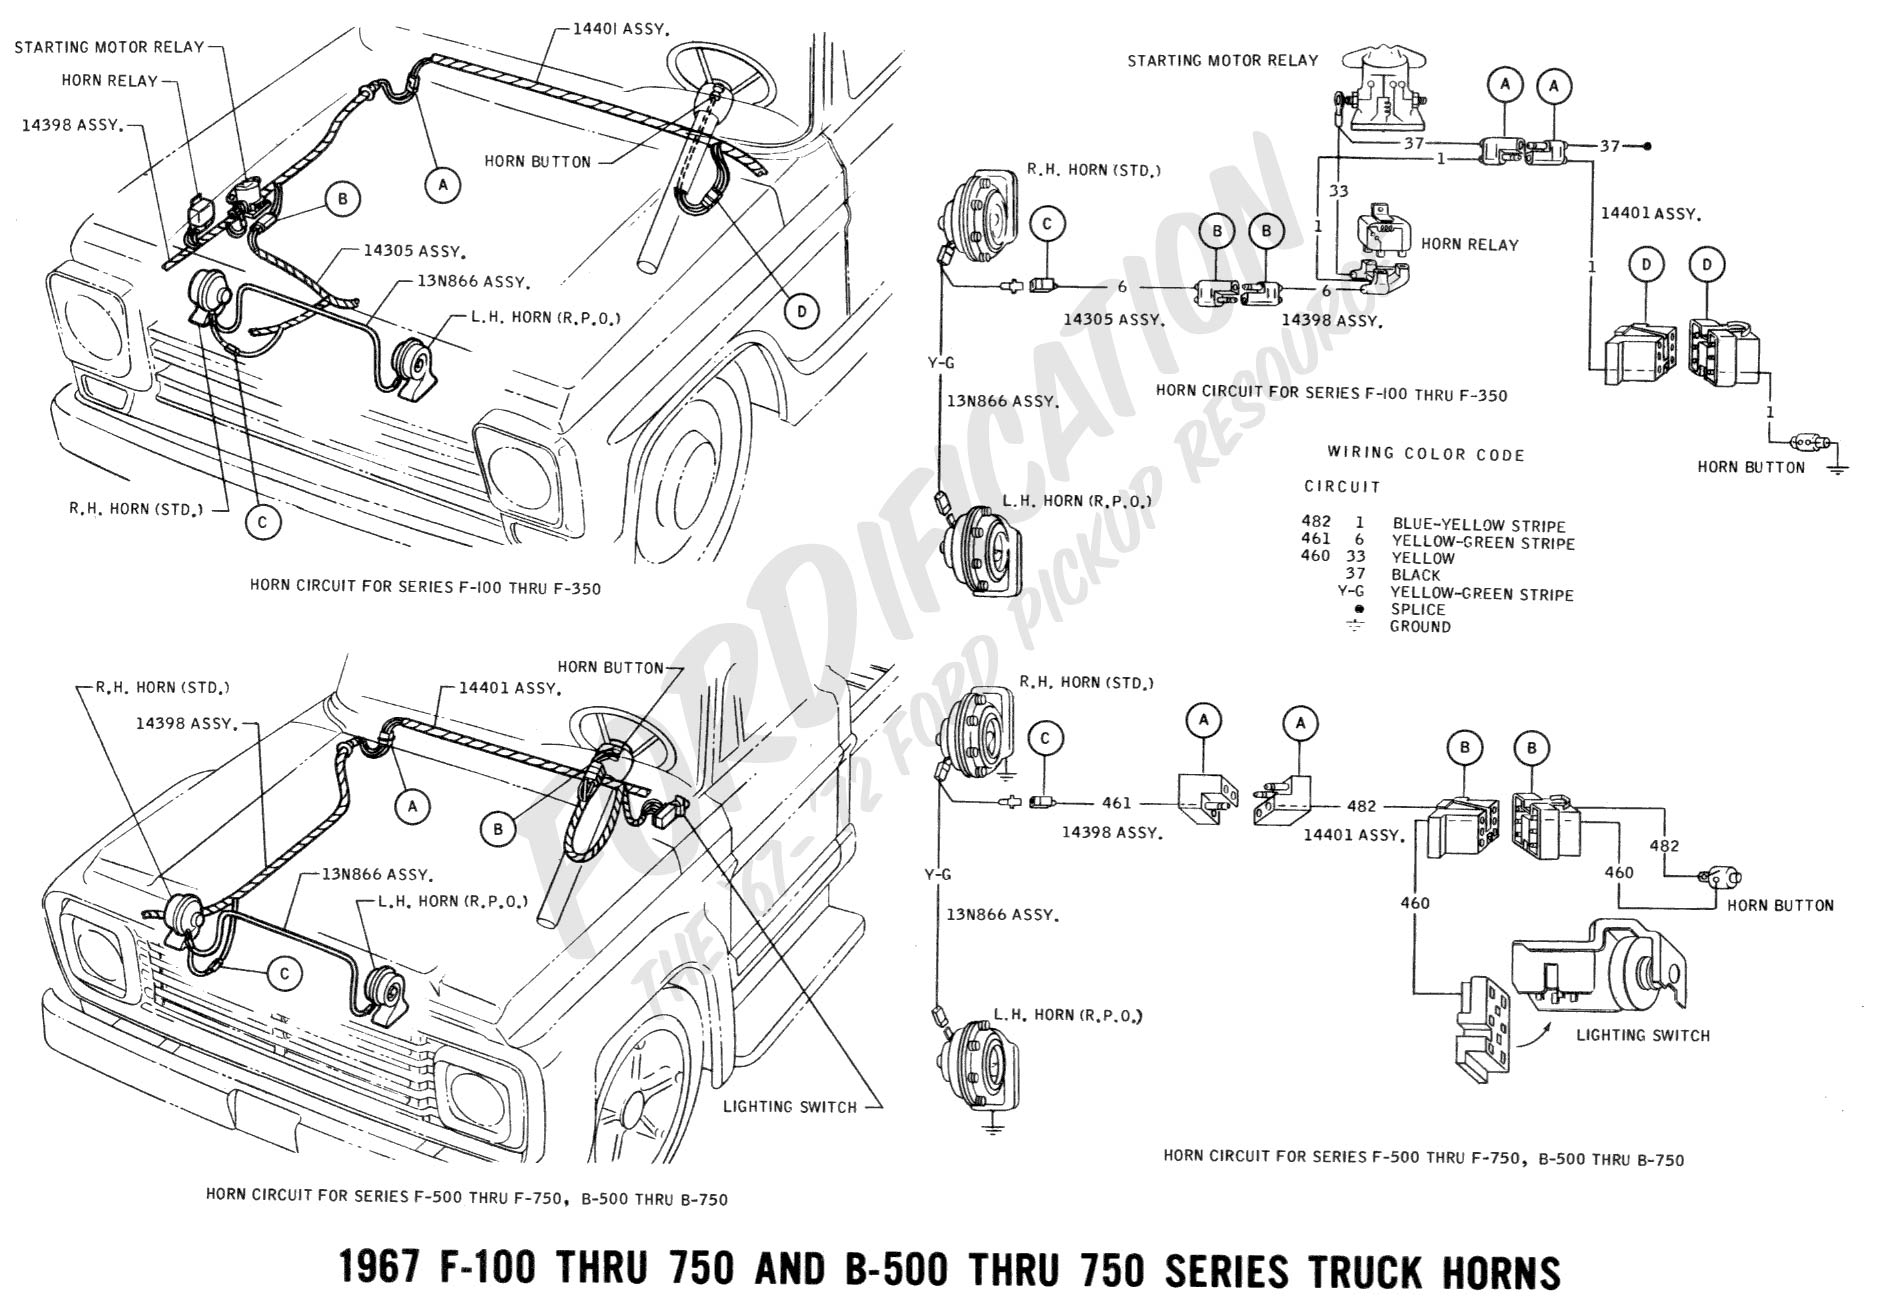 1967 Ford F100 Turn Signal Wiring Diagram Detailed Schematic Diagrams Chevy C10 Fuse Box Truck Technical Drawings And Schematics Section H F 100 Switch